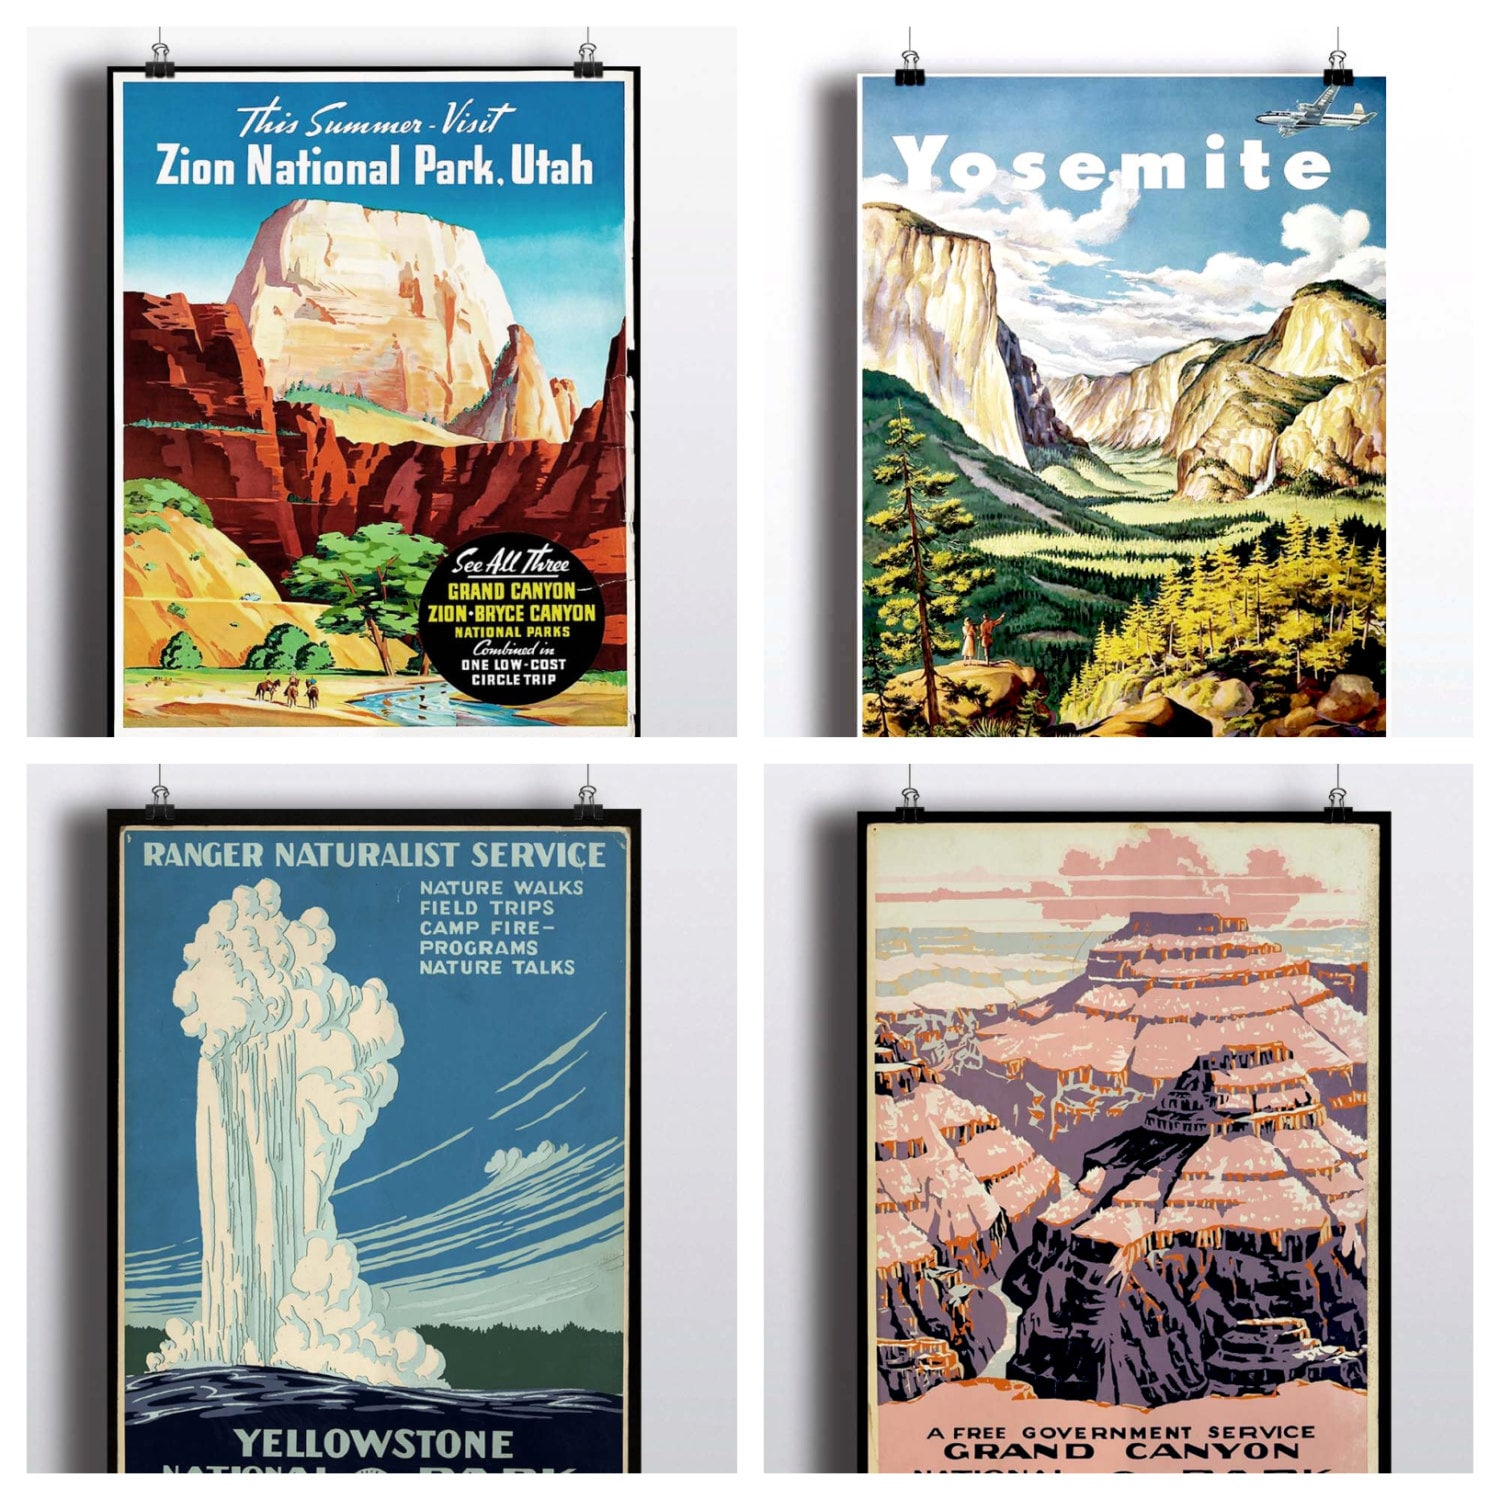 Art Yosemite Poster Vintage National Parks Travel Print Wall: National Park Poster Set Vintage Prints Yosemite Print